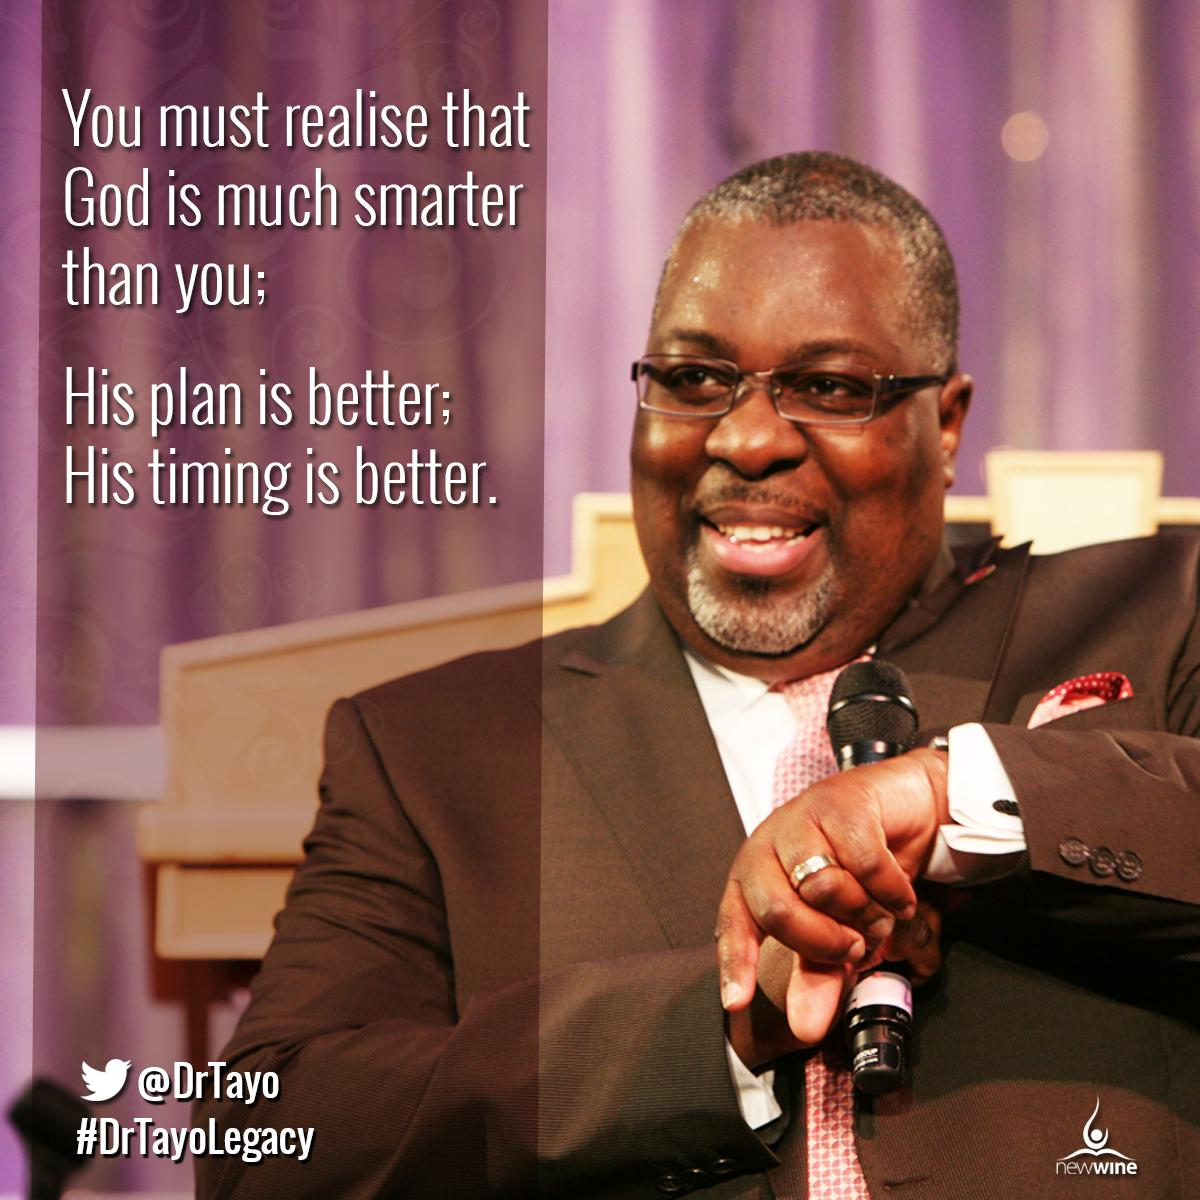 You must realise that God is much smarter than you; His plan is better;  His timing is better. http://t.co/3LtJuMAwnK